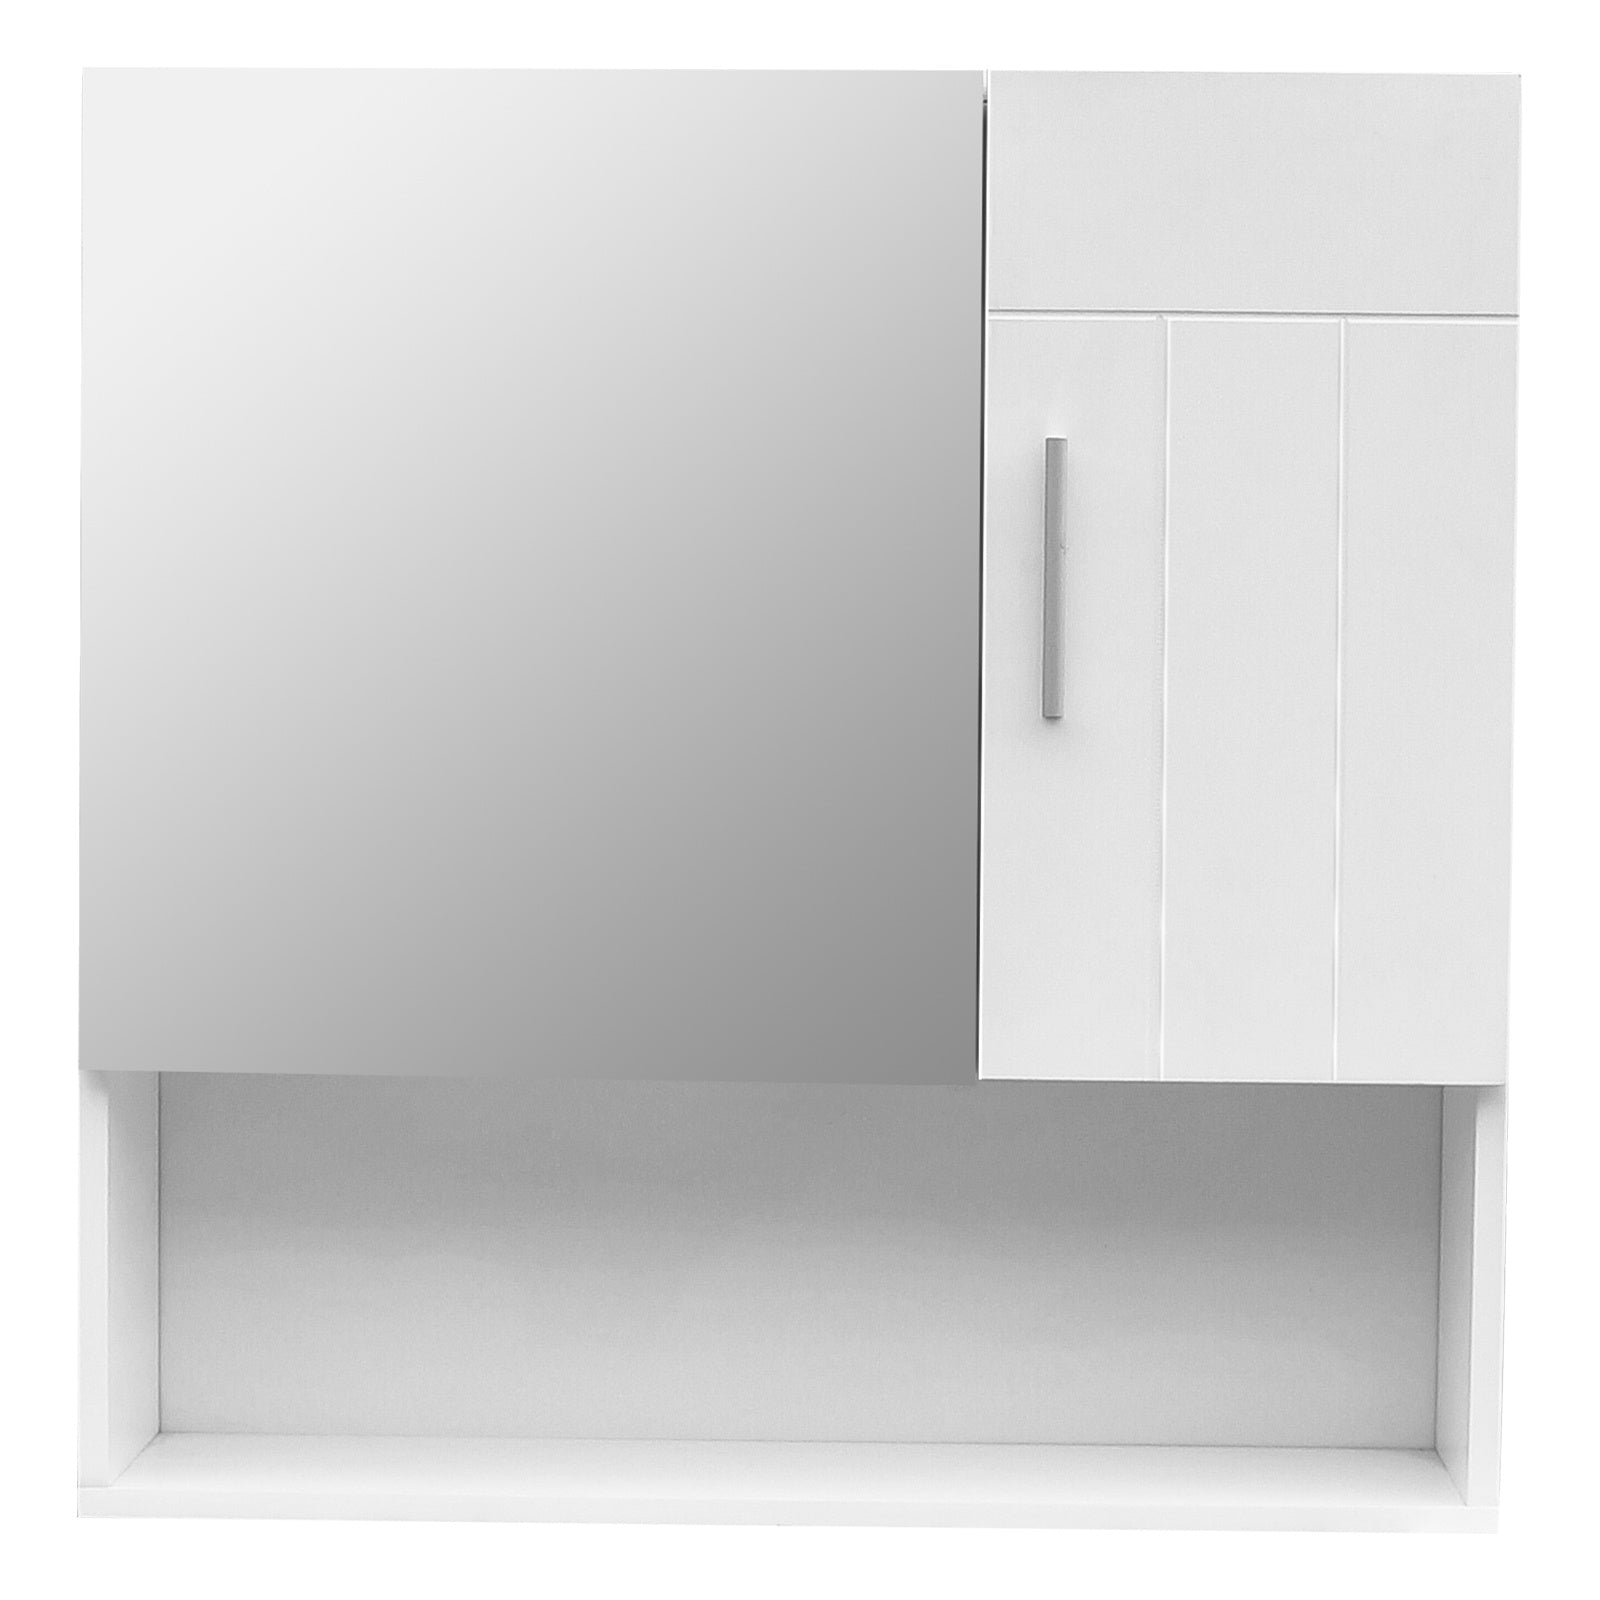 FCH White MDF Spray Paint One Mirror Door One Wooden Door Bathroom Sink Cabinet RT